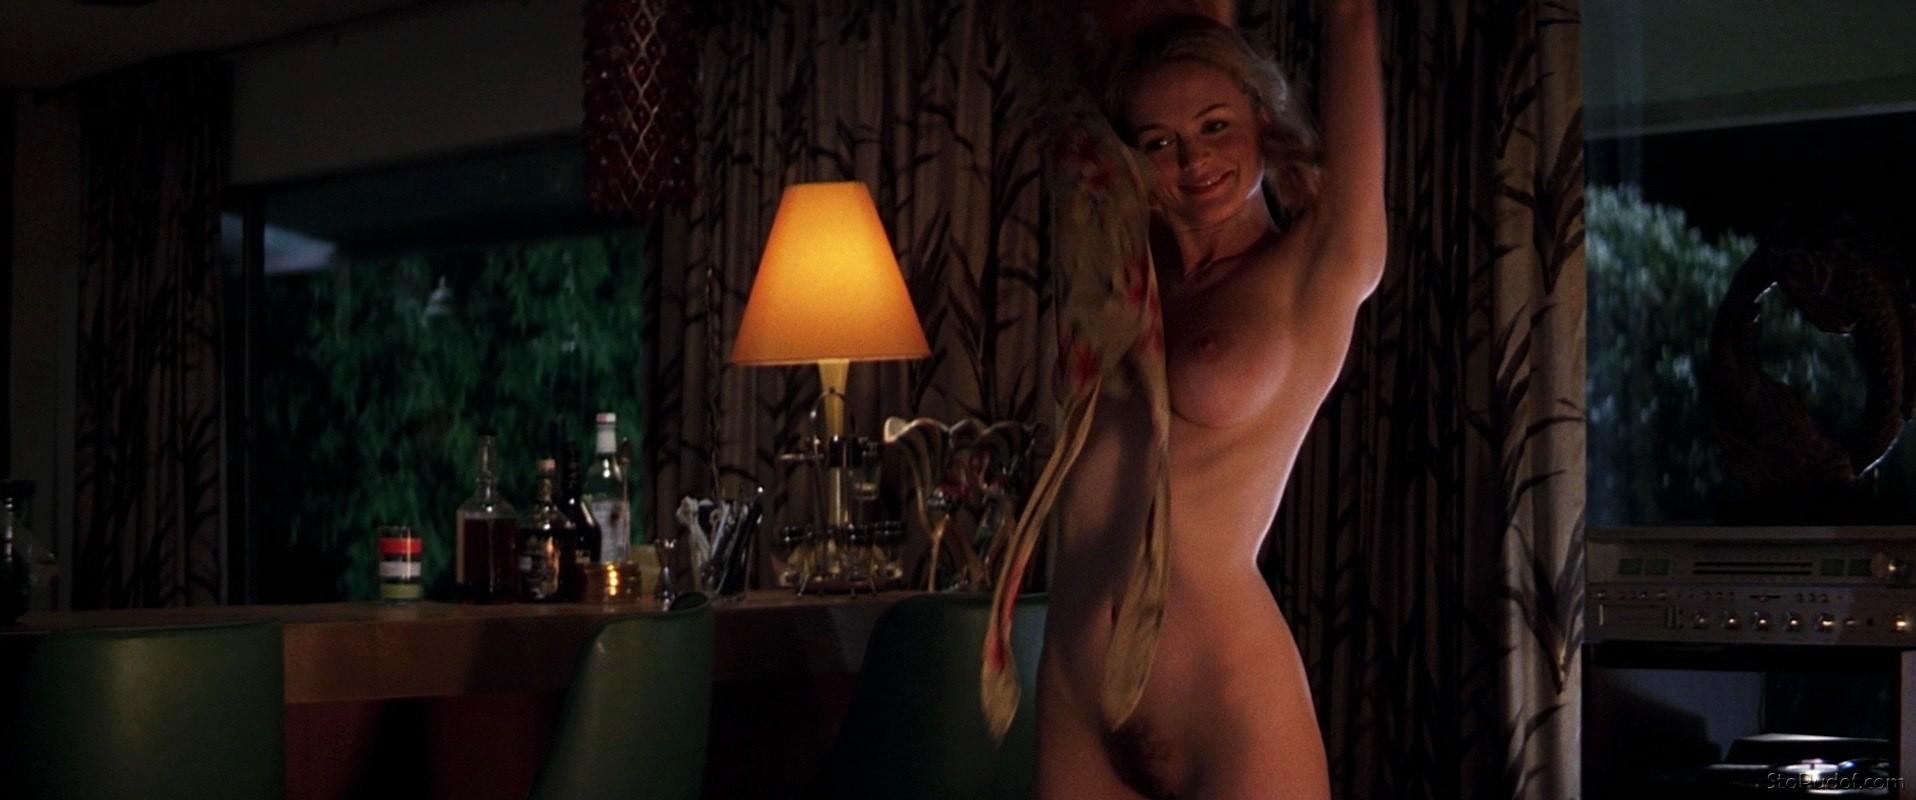 Heather Graham nude pictures shown - UkPhotoSafari